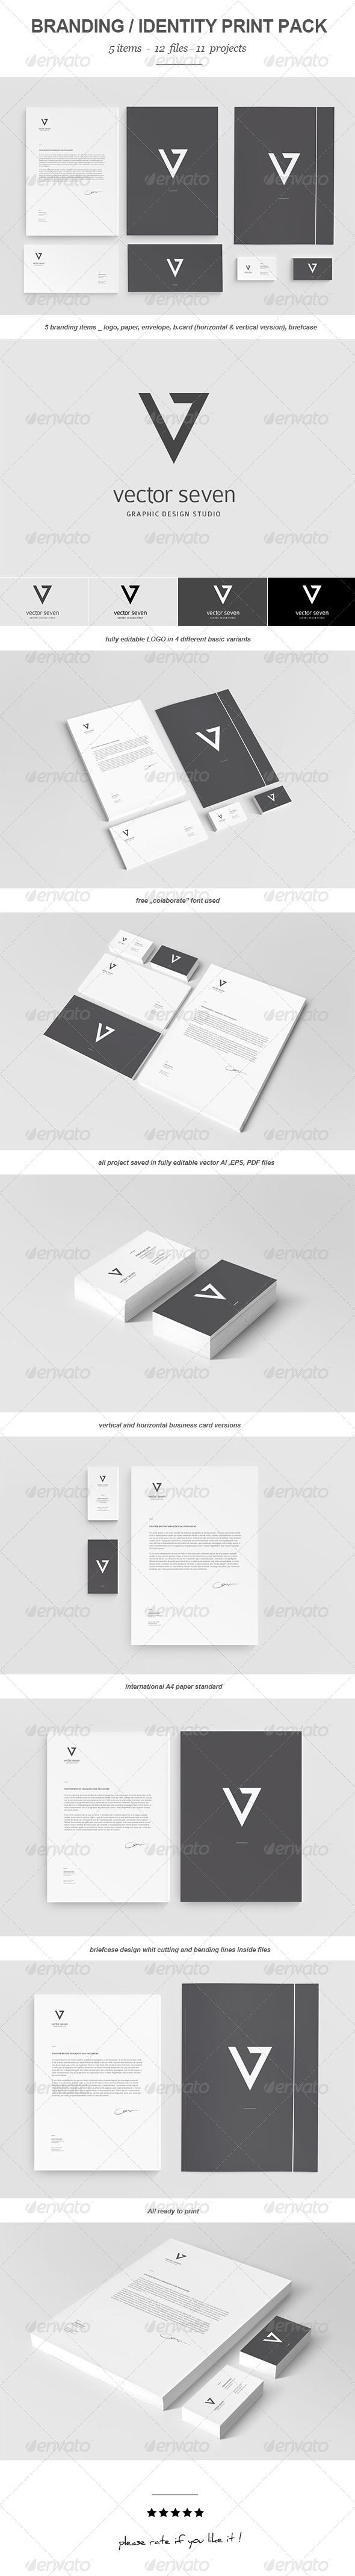 Branding Print Pack, minimalist and elegant set of visual identification system. Fully editable vector files allow you to adapt the design to suit your needs.